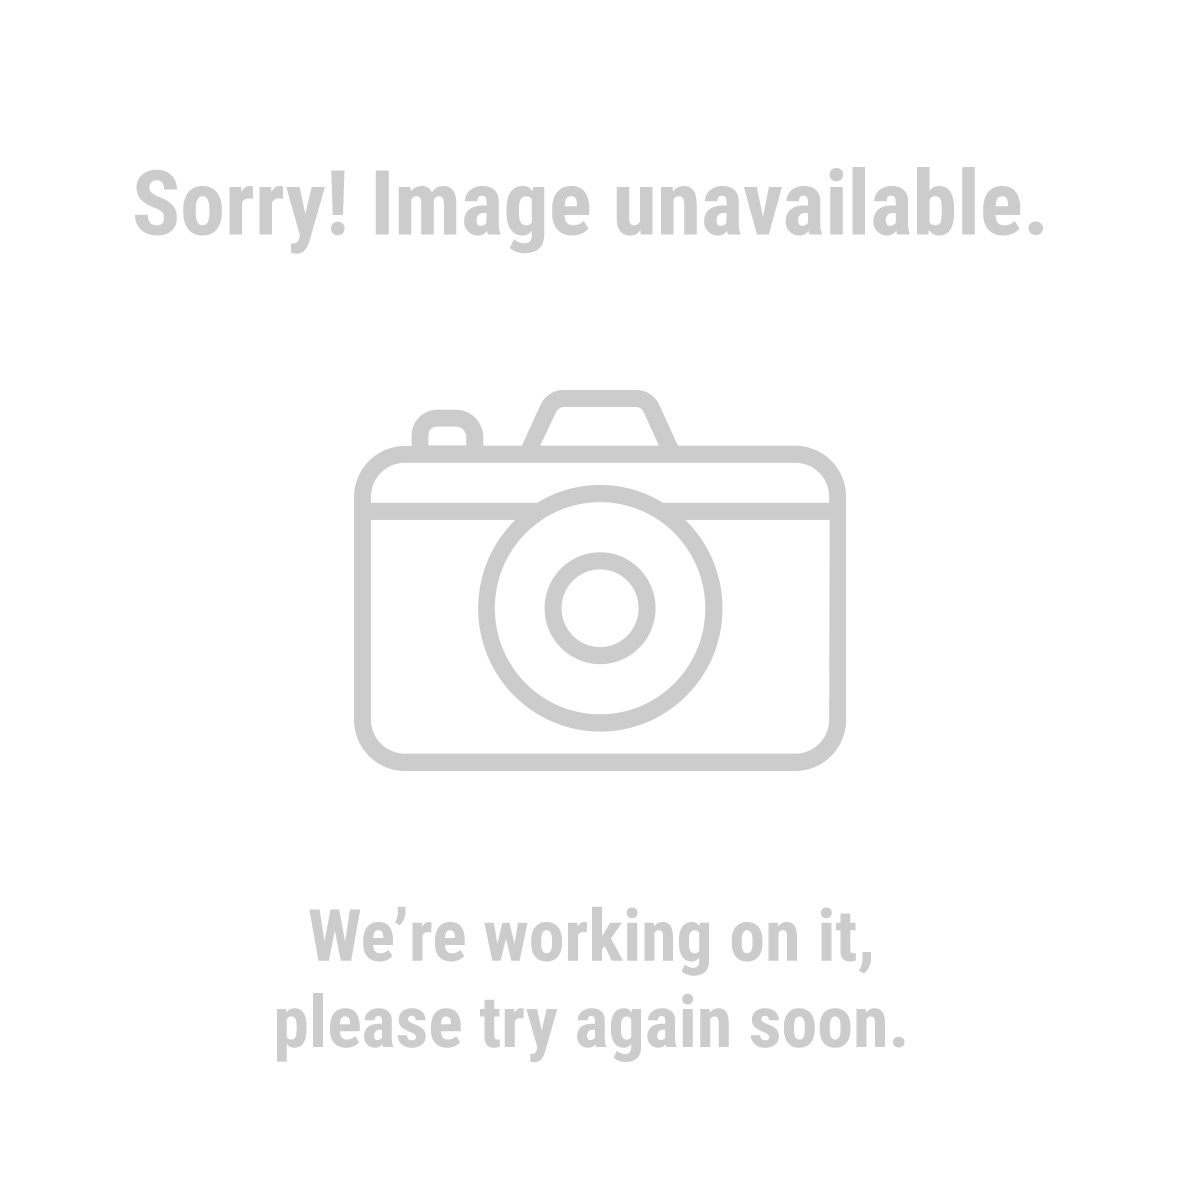 Pittsburgh 94597 10 Piece Metric Hex Key Set